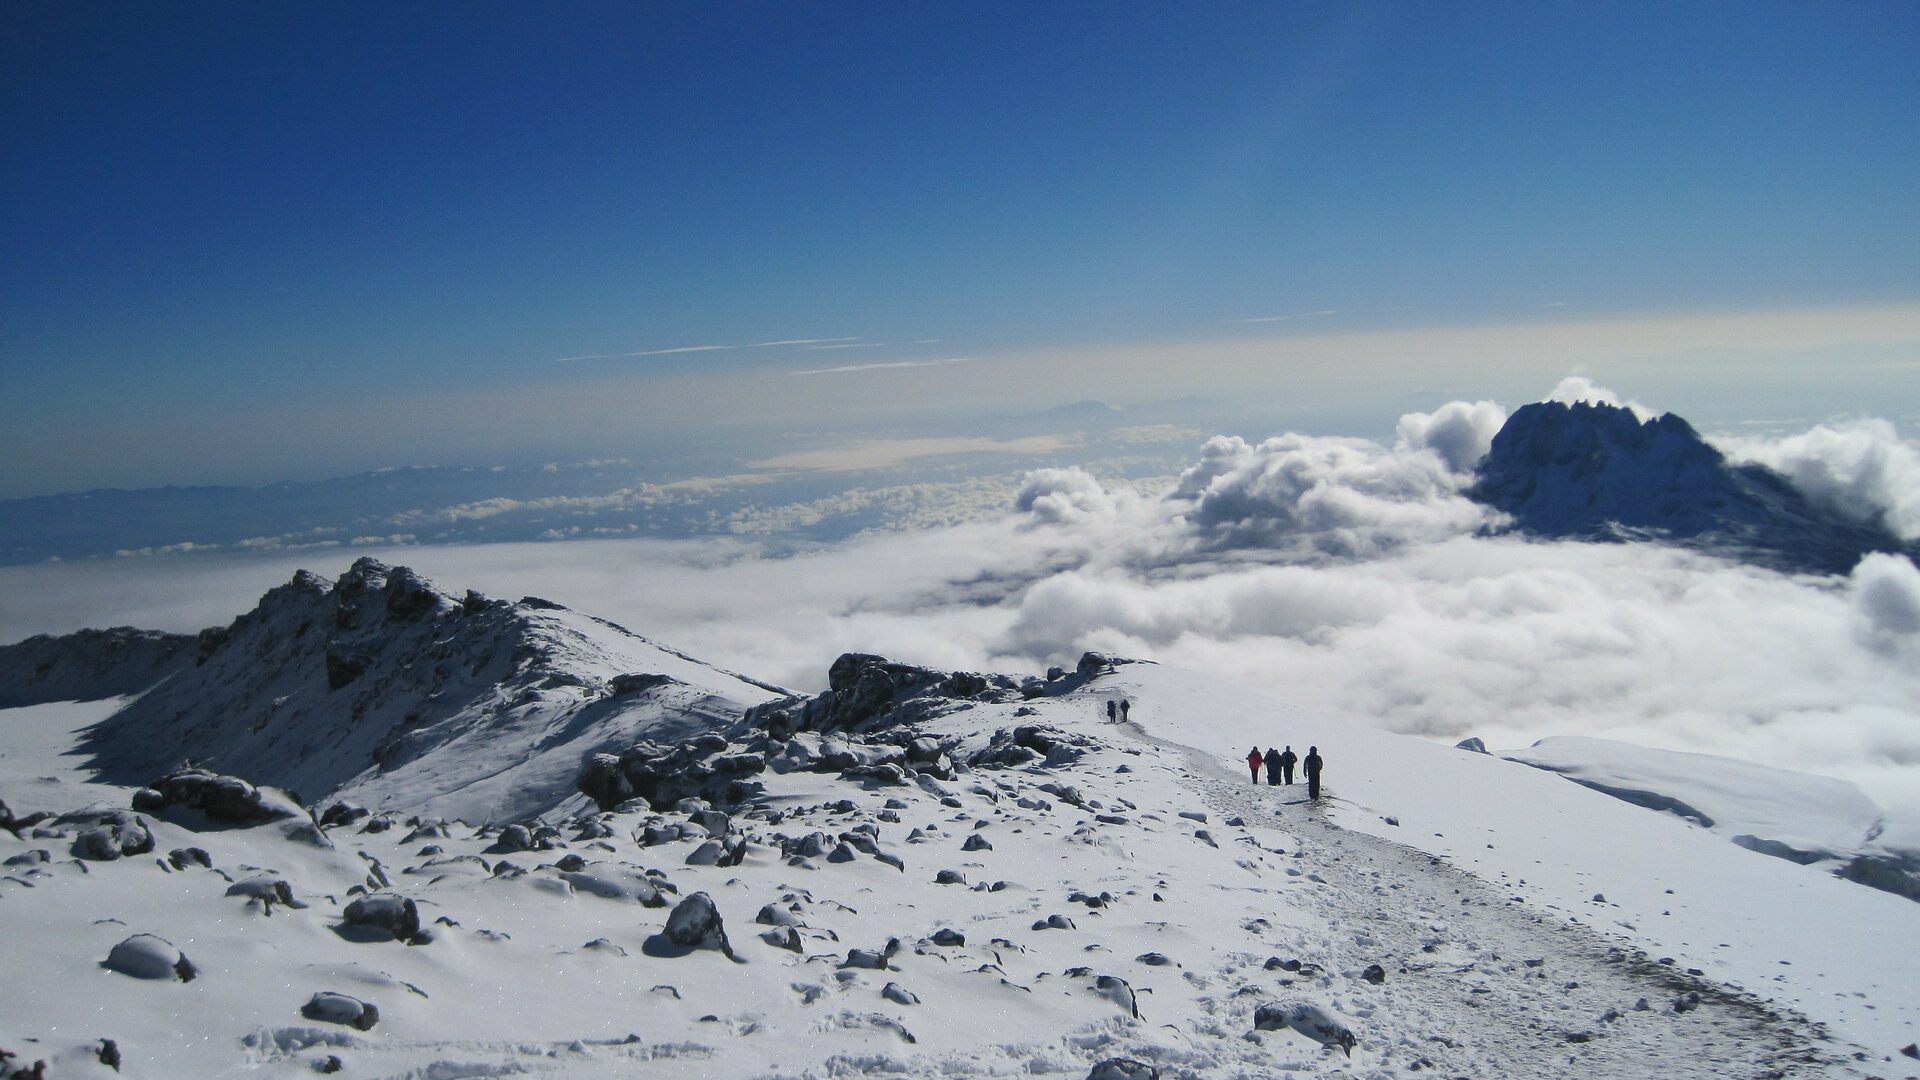 Top of mountain Kilimanjaro snowy